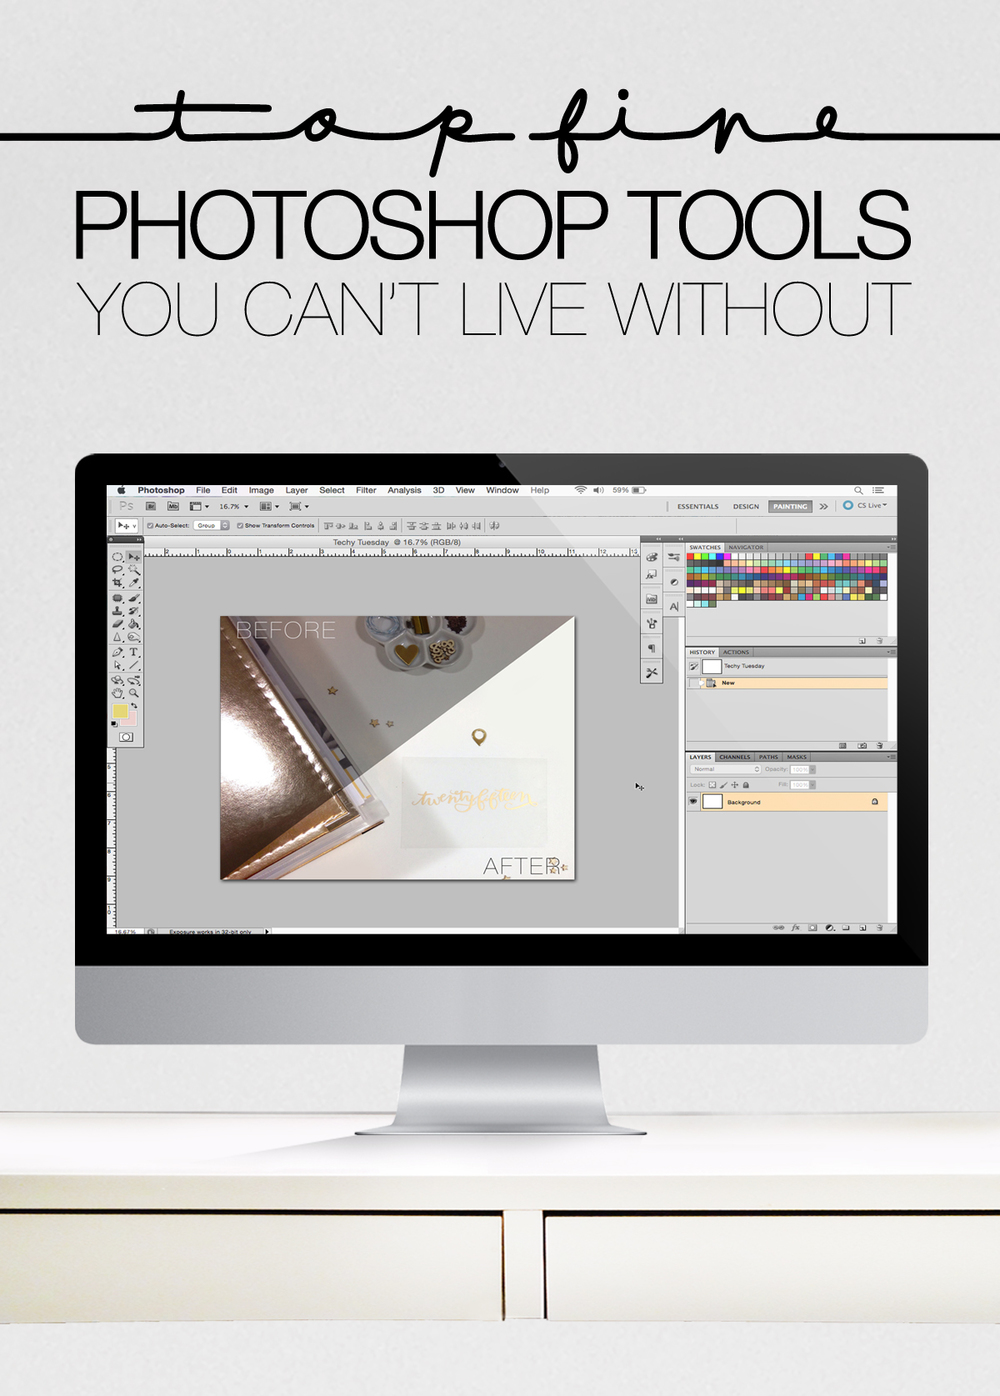 TOP 5 PHOTOSHOP TOOLS YOU CAN'T LIVE WITHOUT | THE PAPER CURATOR